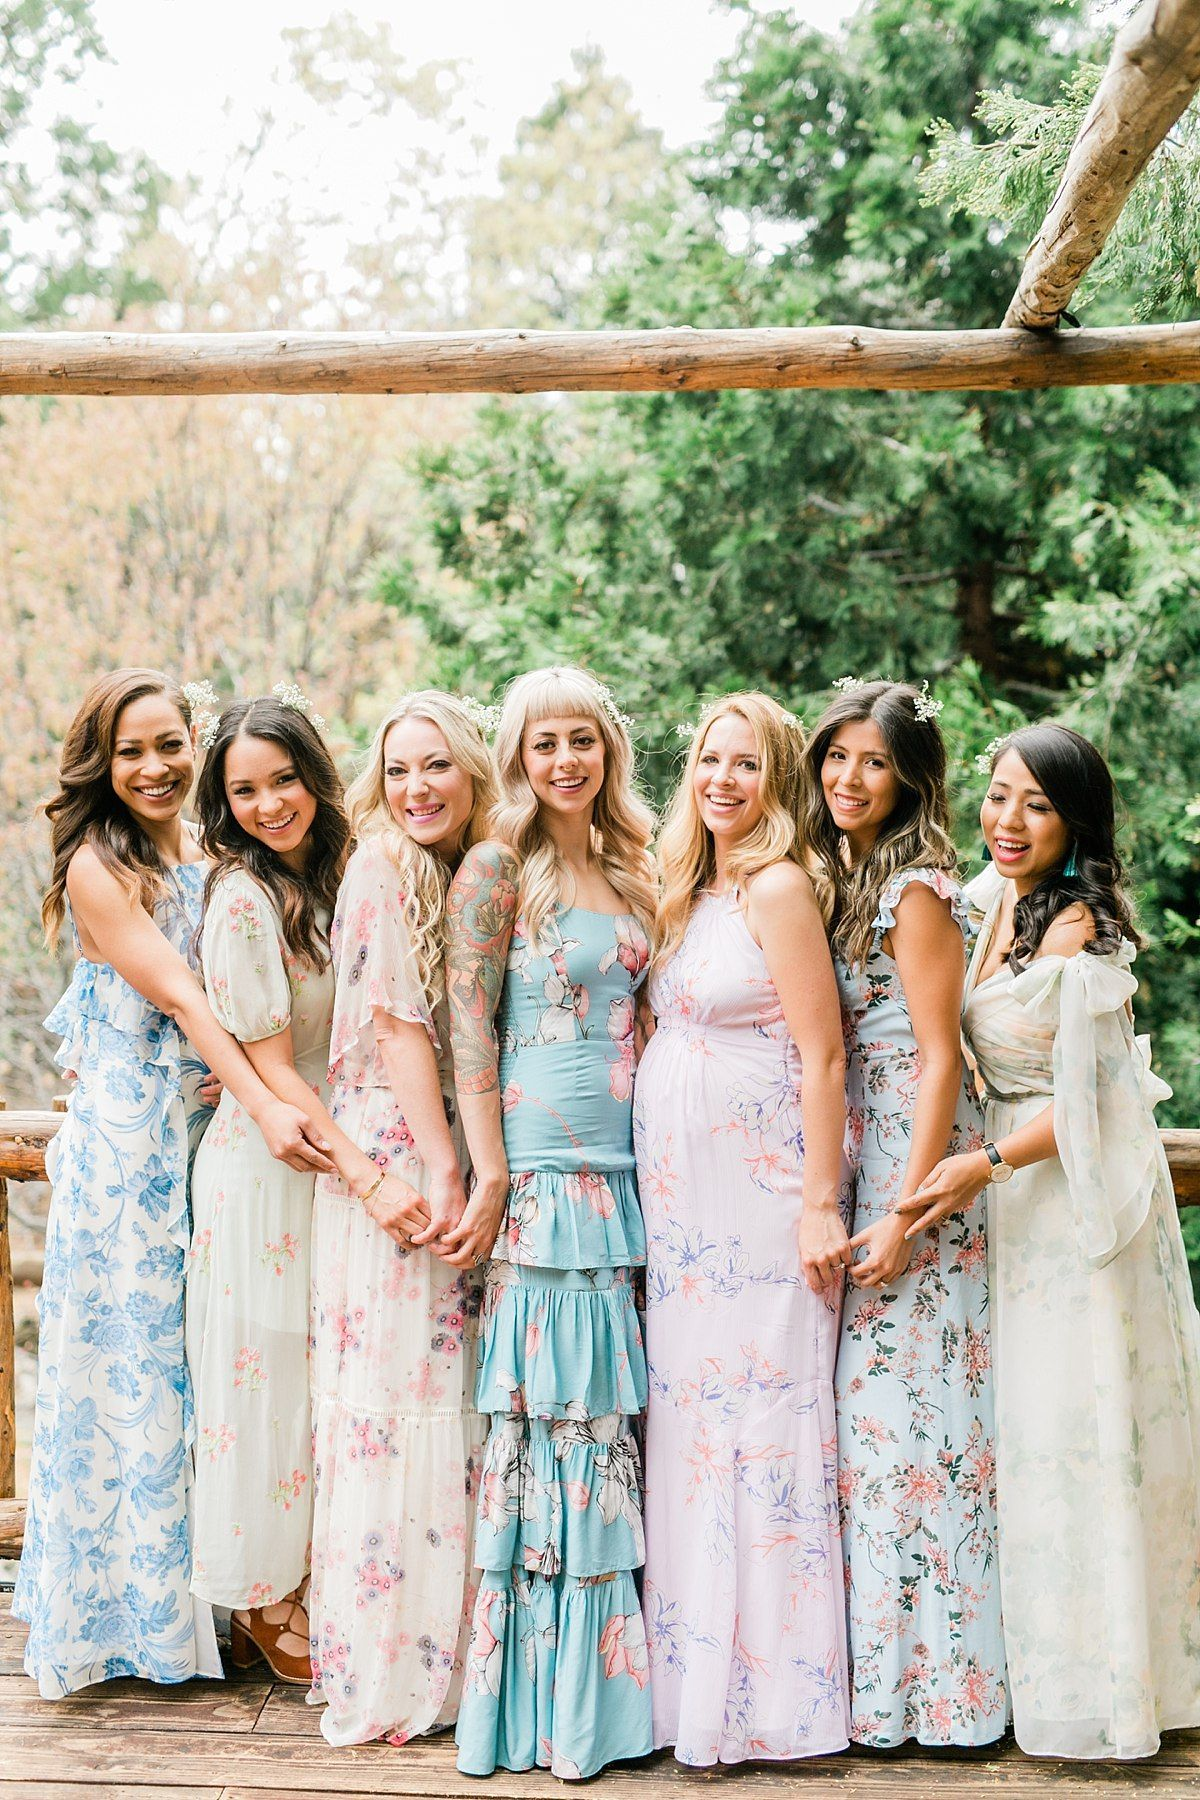 Mix Matched Bridesmaid Dresses In A Variety Of Floral Prints For A Midsummer Nights D Pastel Bridesmaid Dresses Pastel Bridesmaids Patterned Bridesmaid Dresses